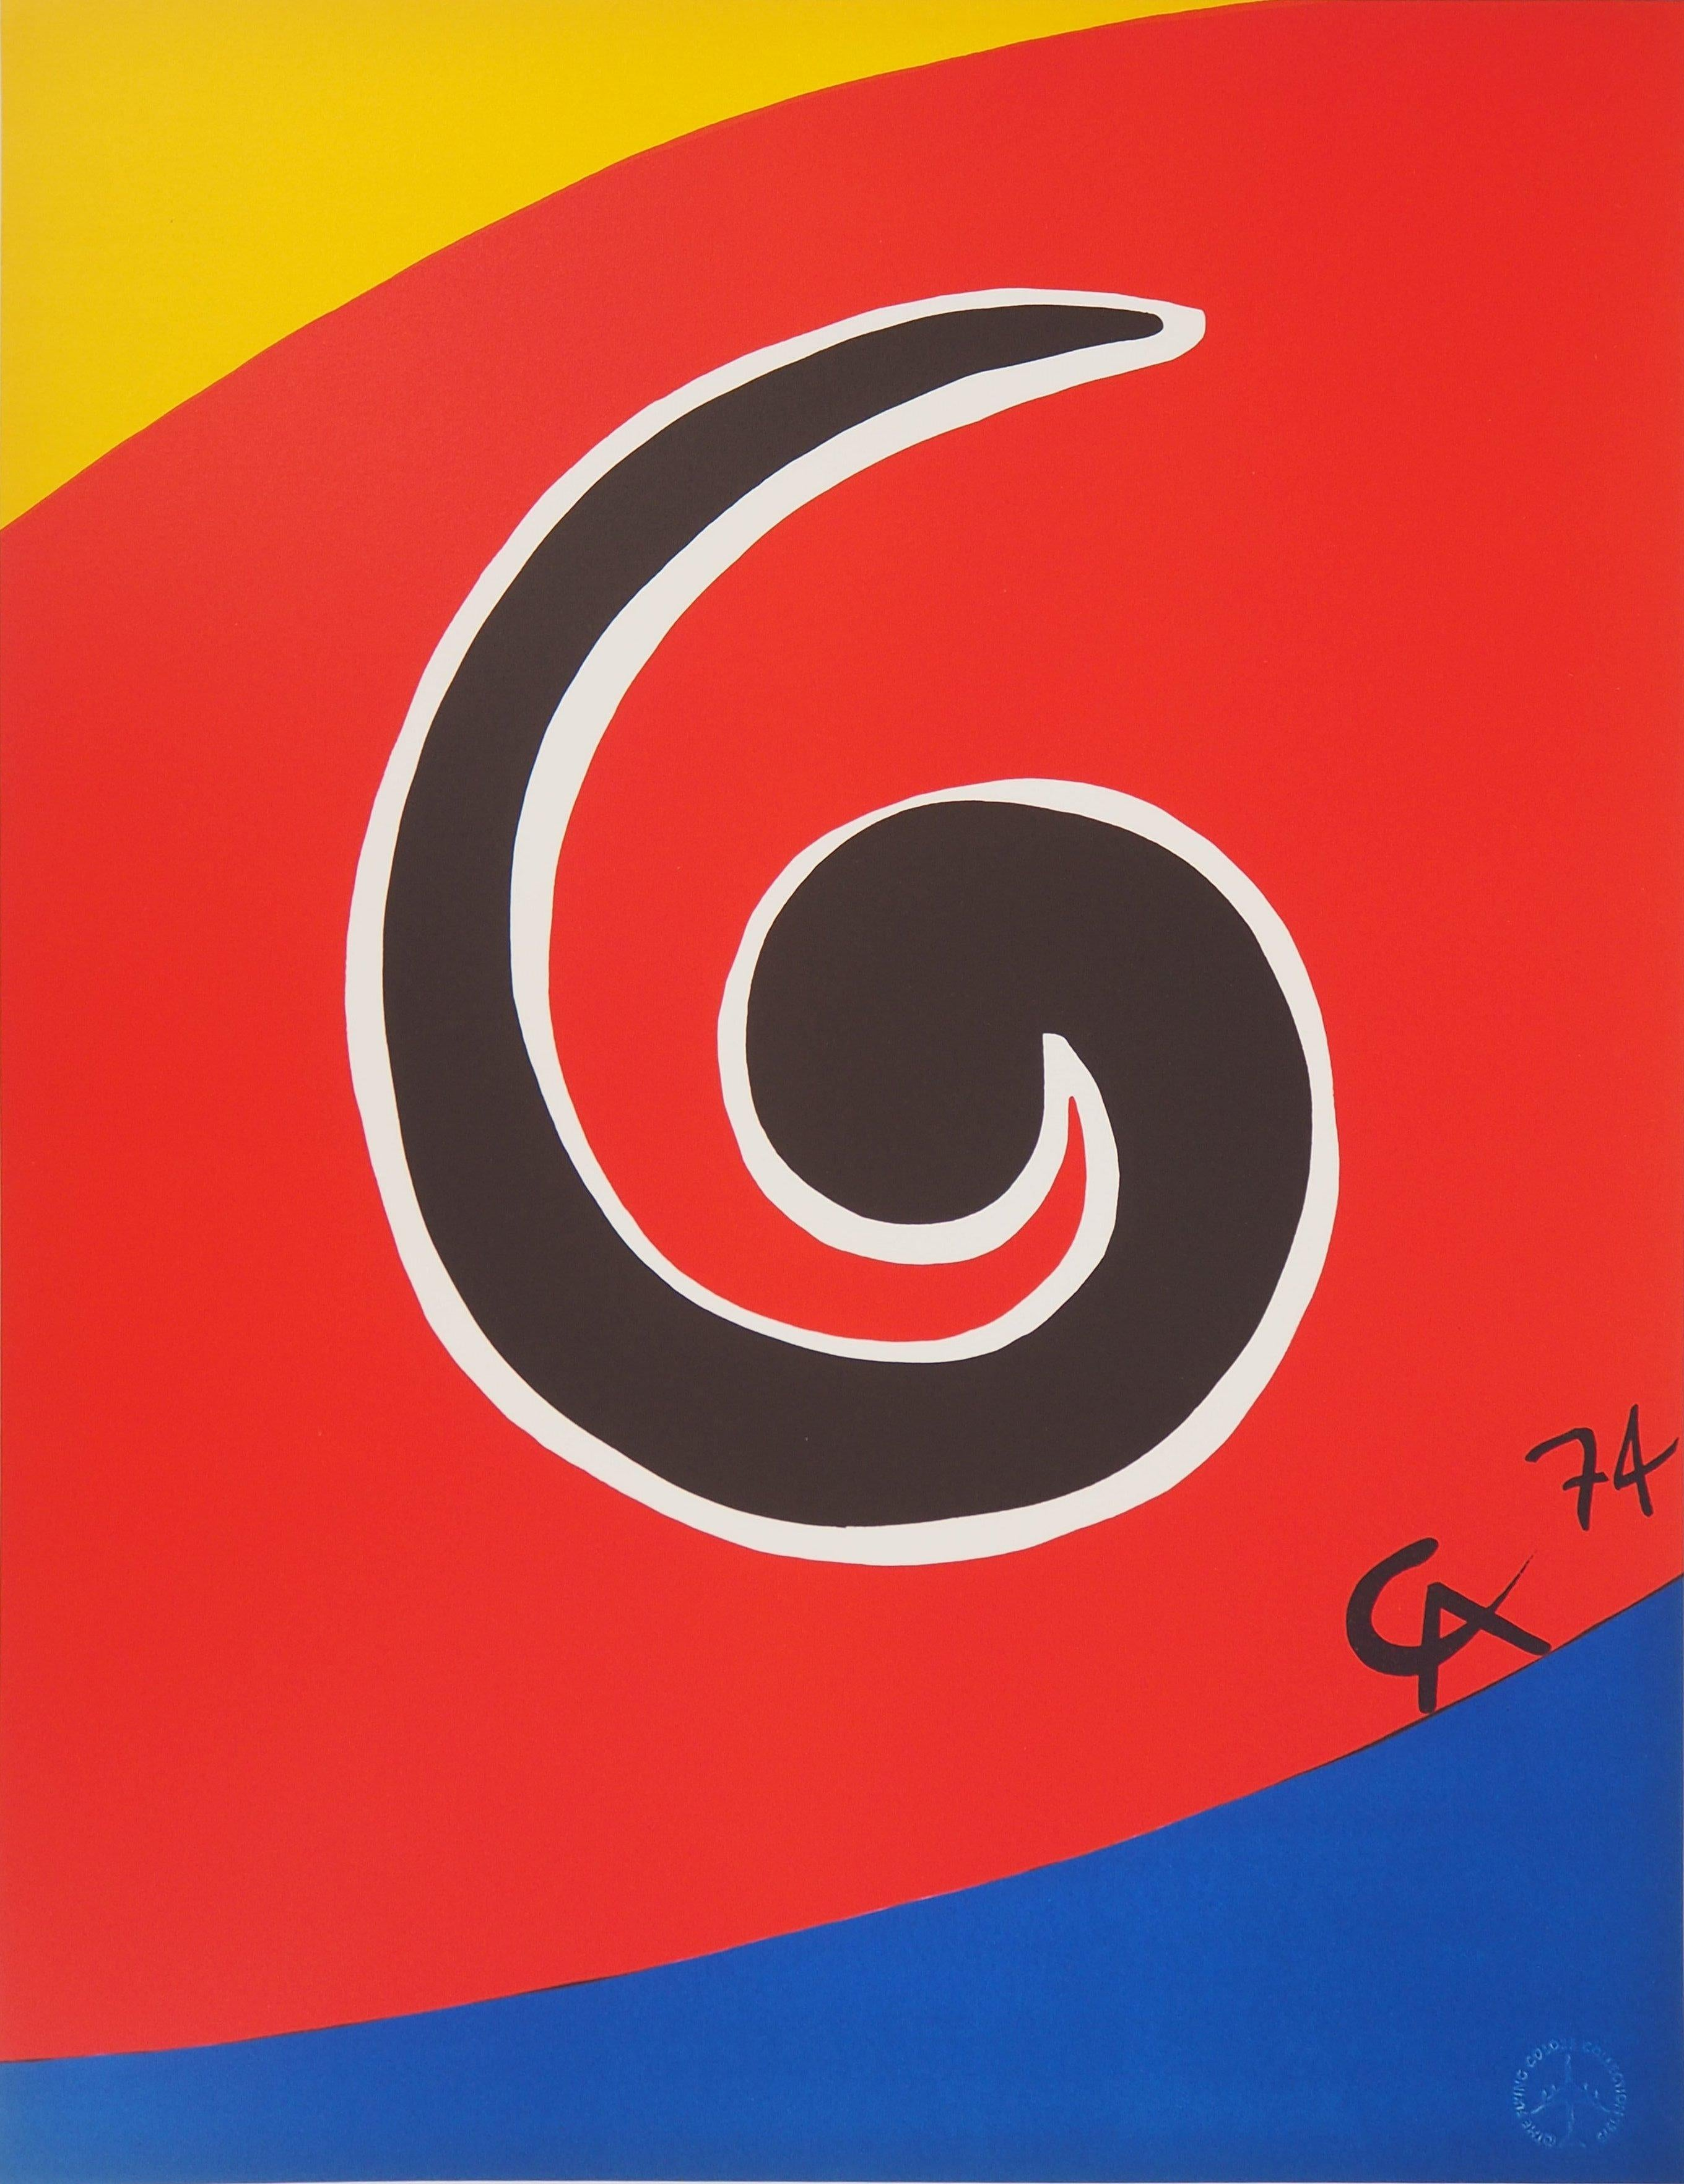 Flying Colors - Spiral, 1974 - Original lithograph, Signed